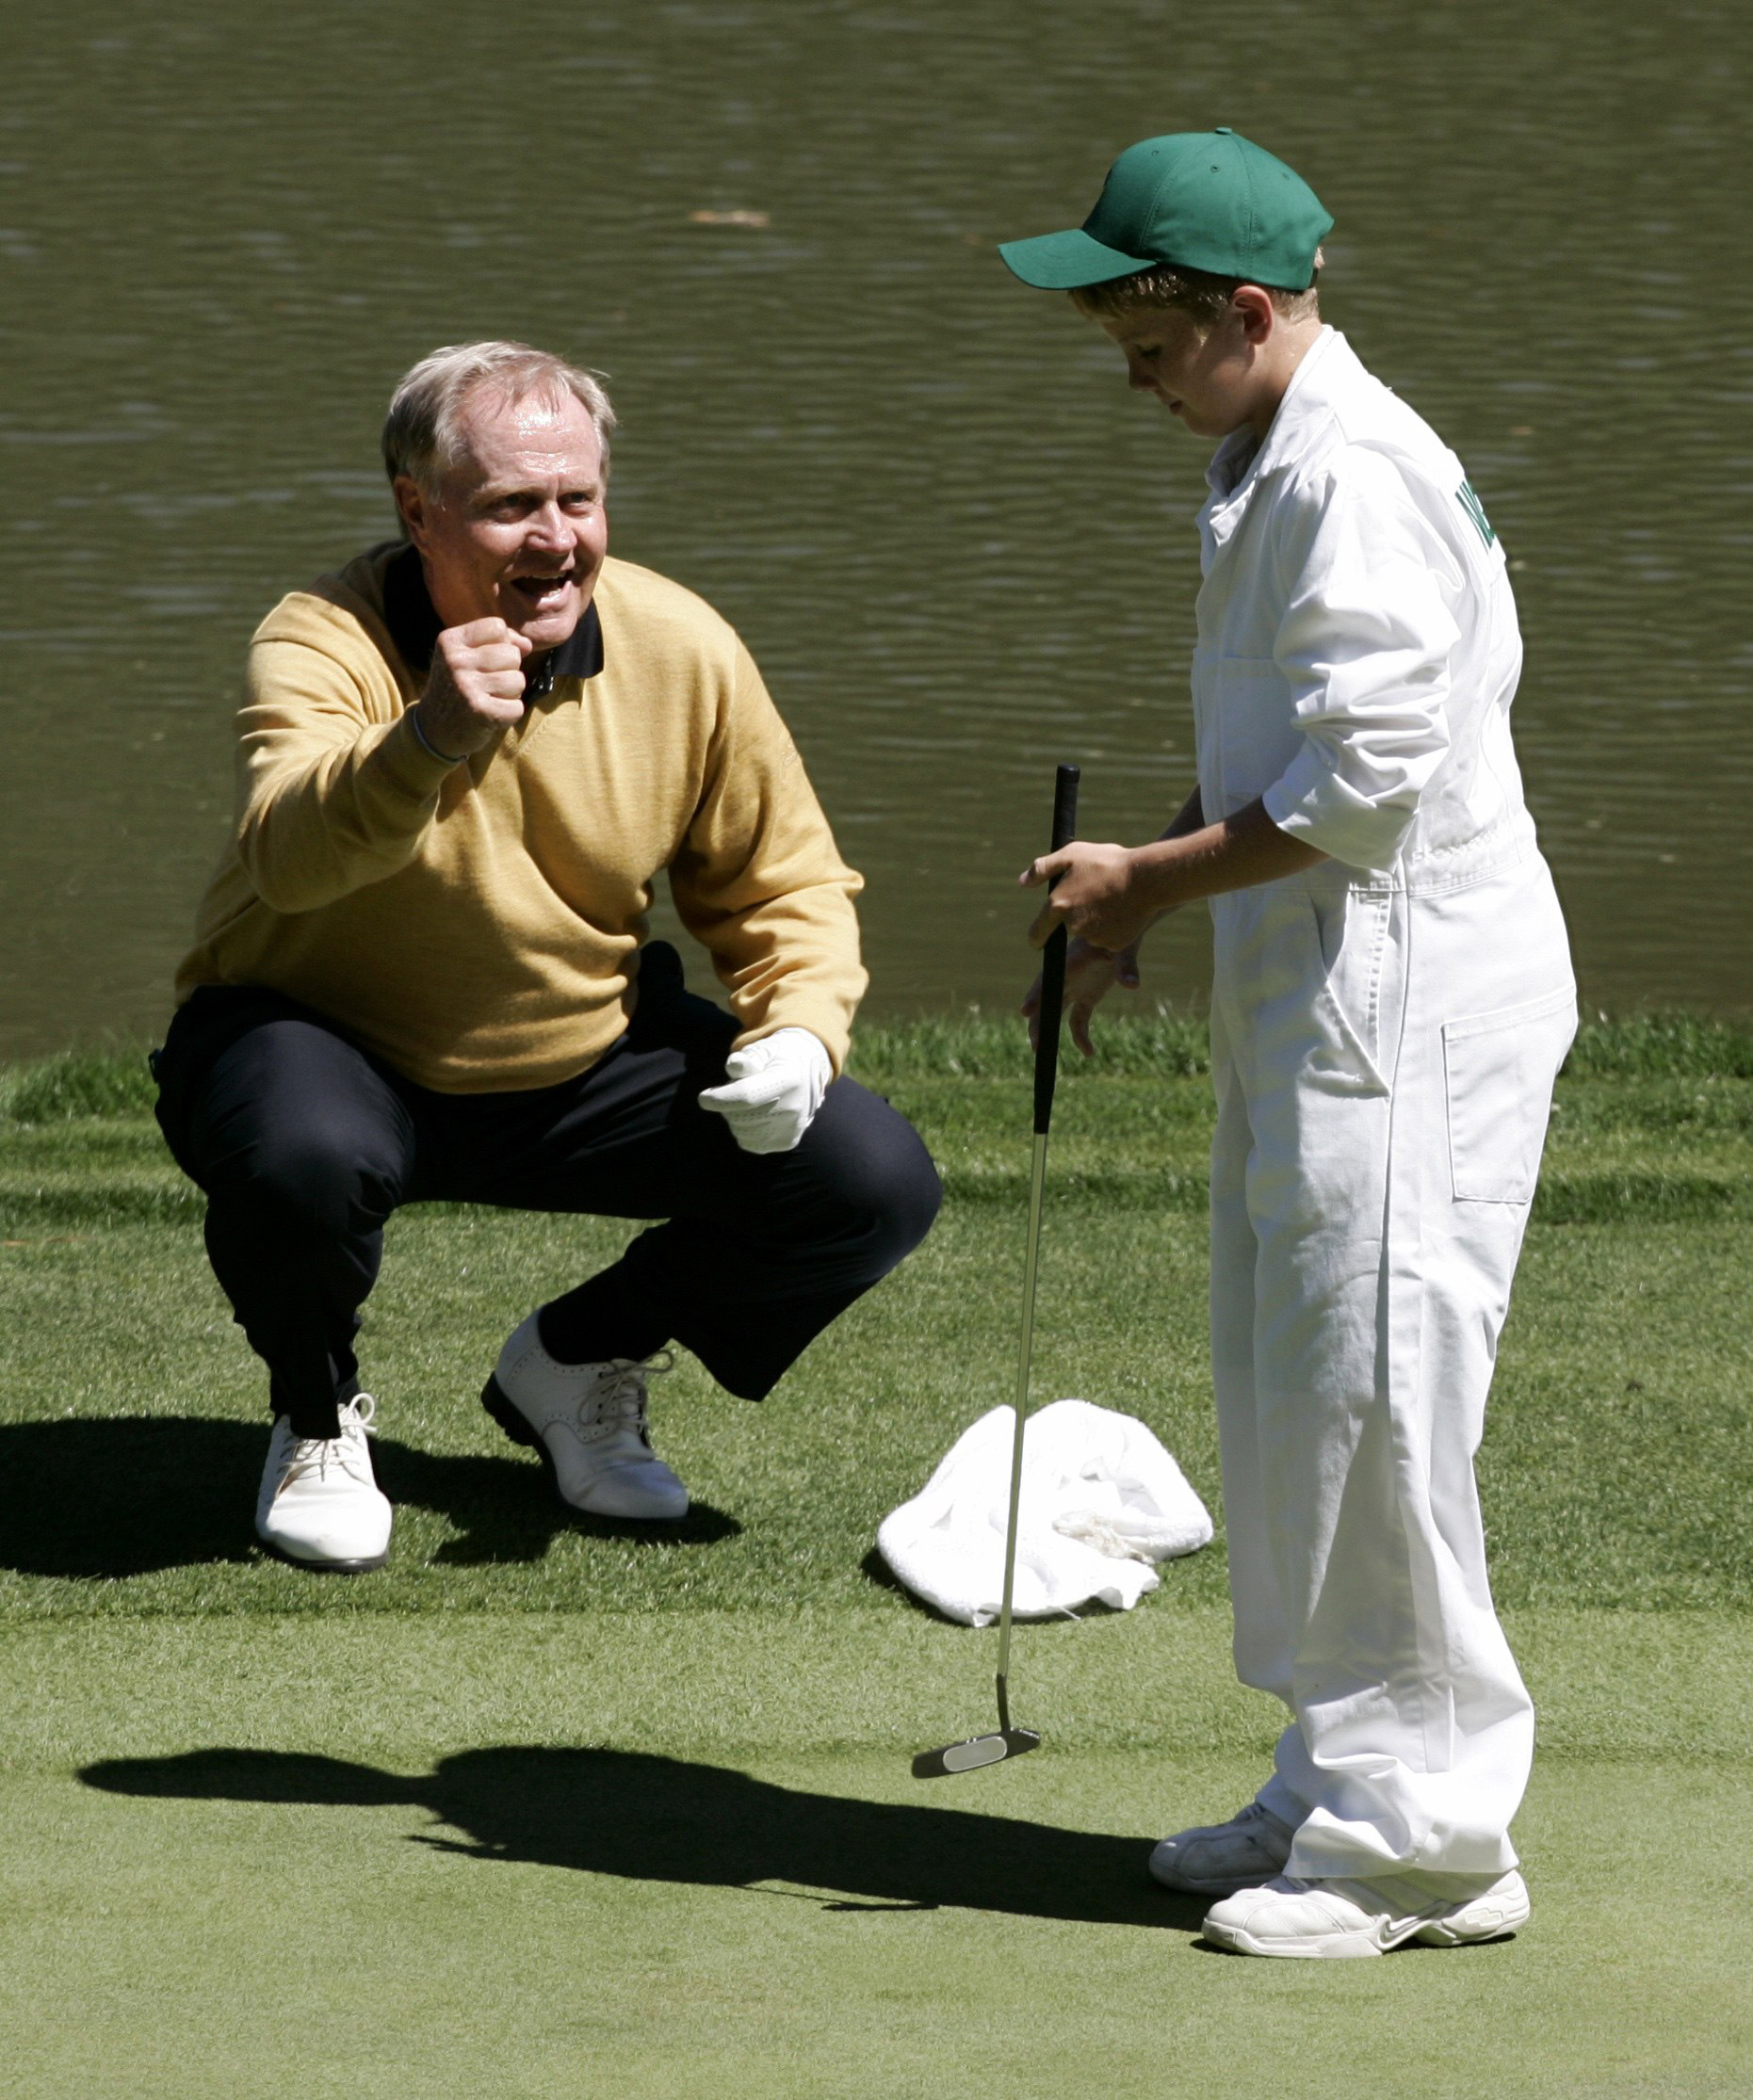 Jack Nicklaus celebrates as his grandson and caddie, Charlie Nicklaus, 11, makes a putt on the final hole of the annual par three tournament at the Augusta National Golf Club in Augusta, Georgia, April 5, 2006.